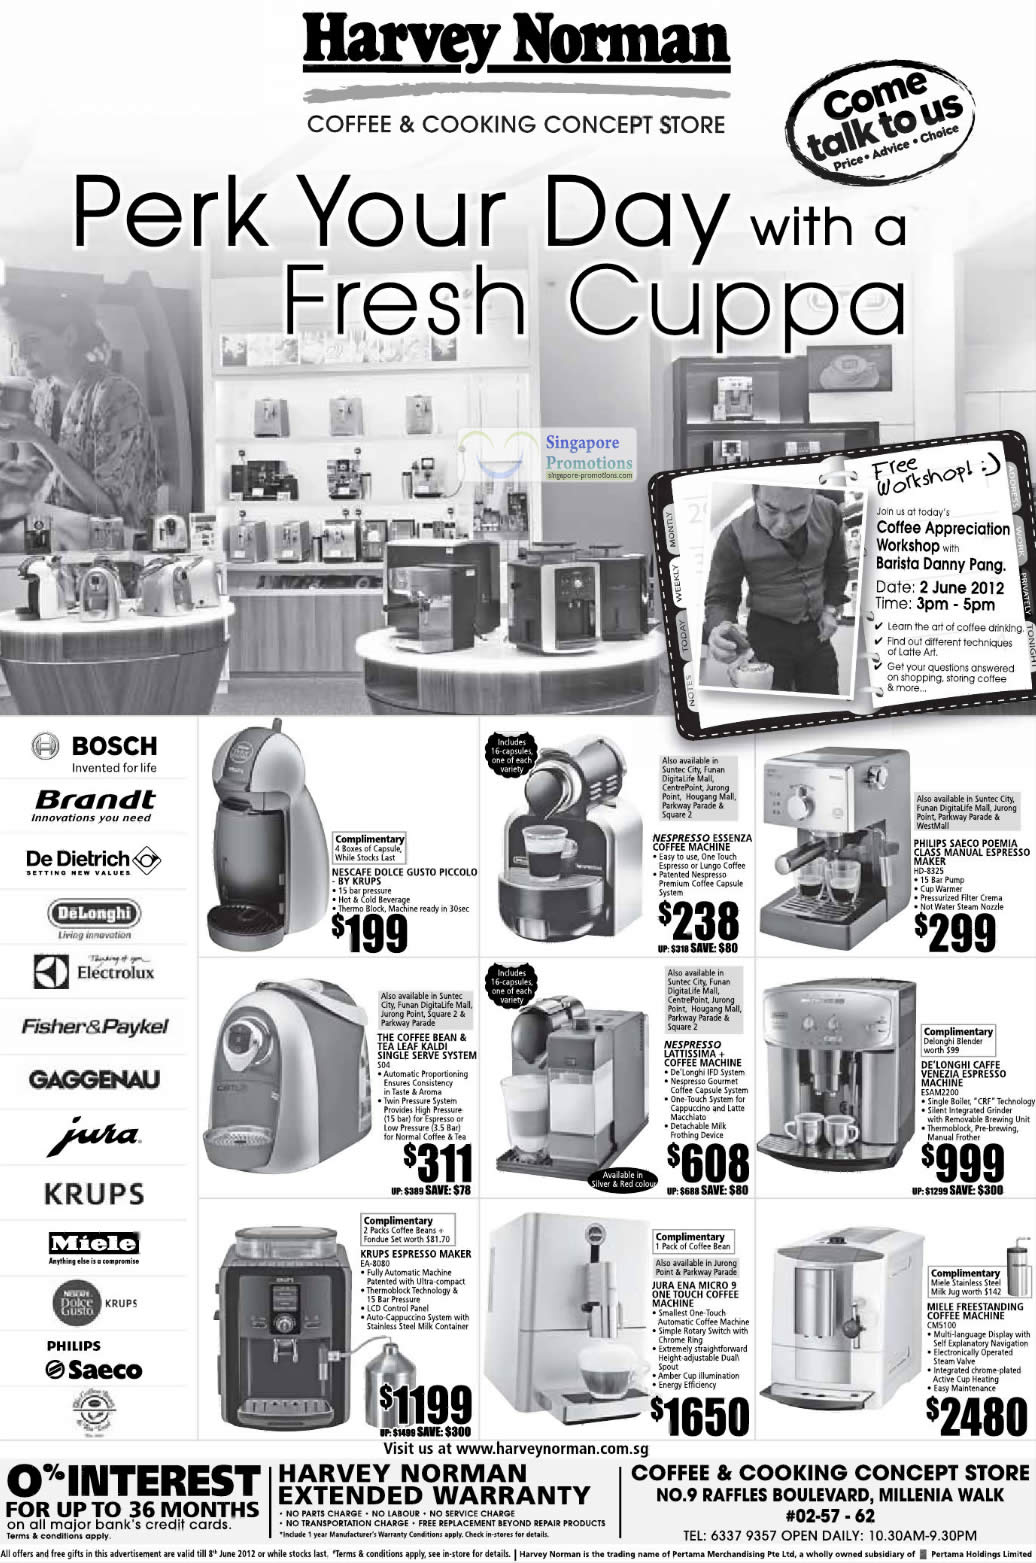 coffee maker  nescafe dolce  nespresso  philips  delonghi HTC Phones HTC Touch Phone